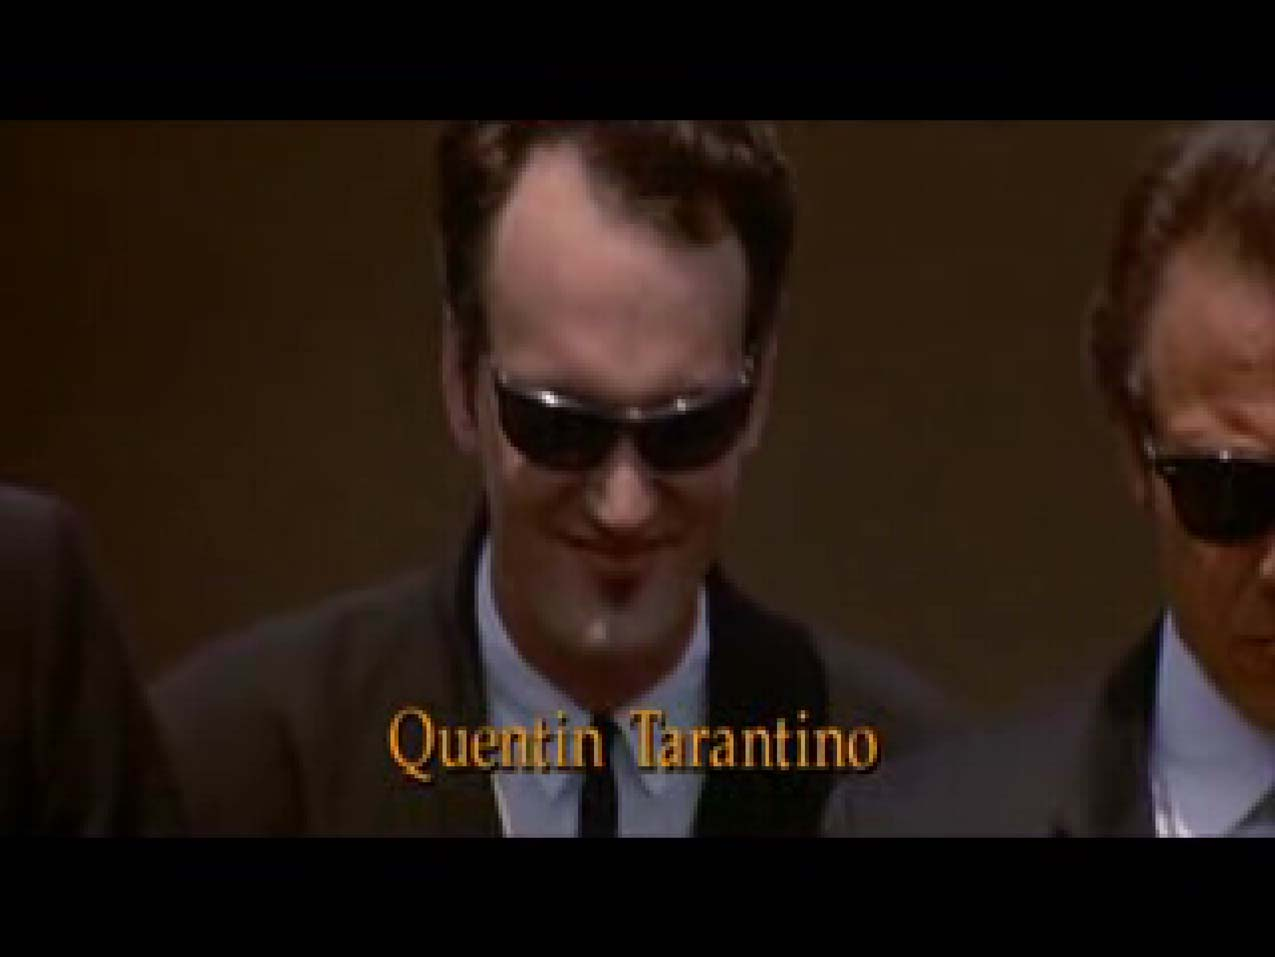 Quentin in Reservoir perros